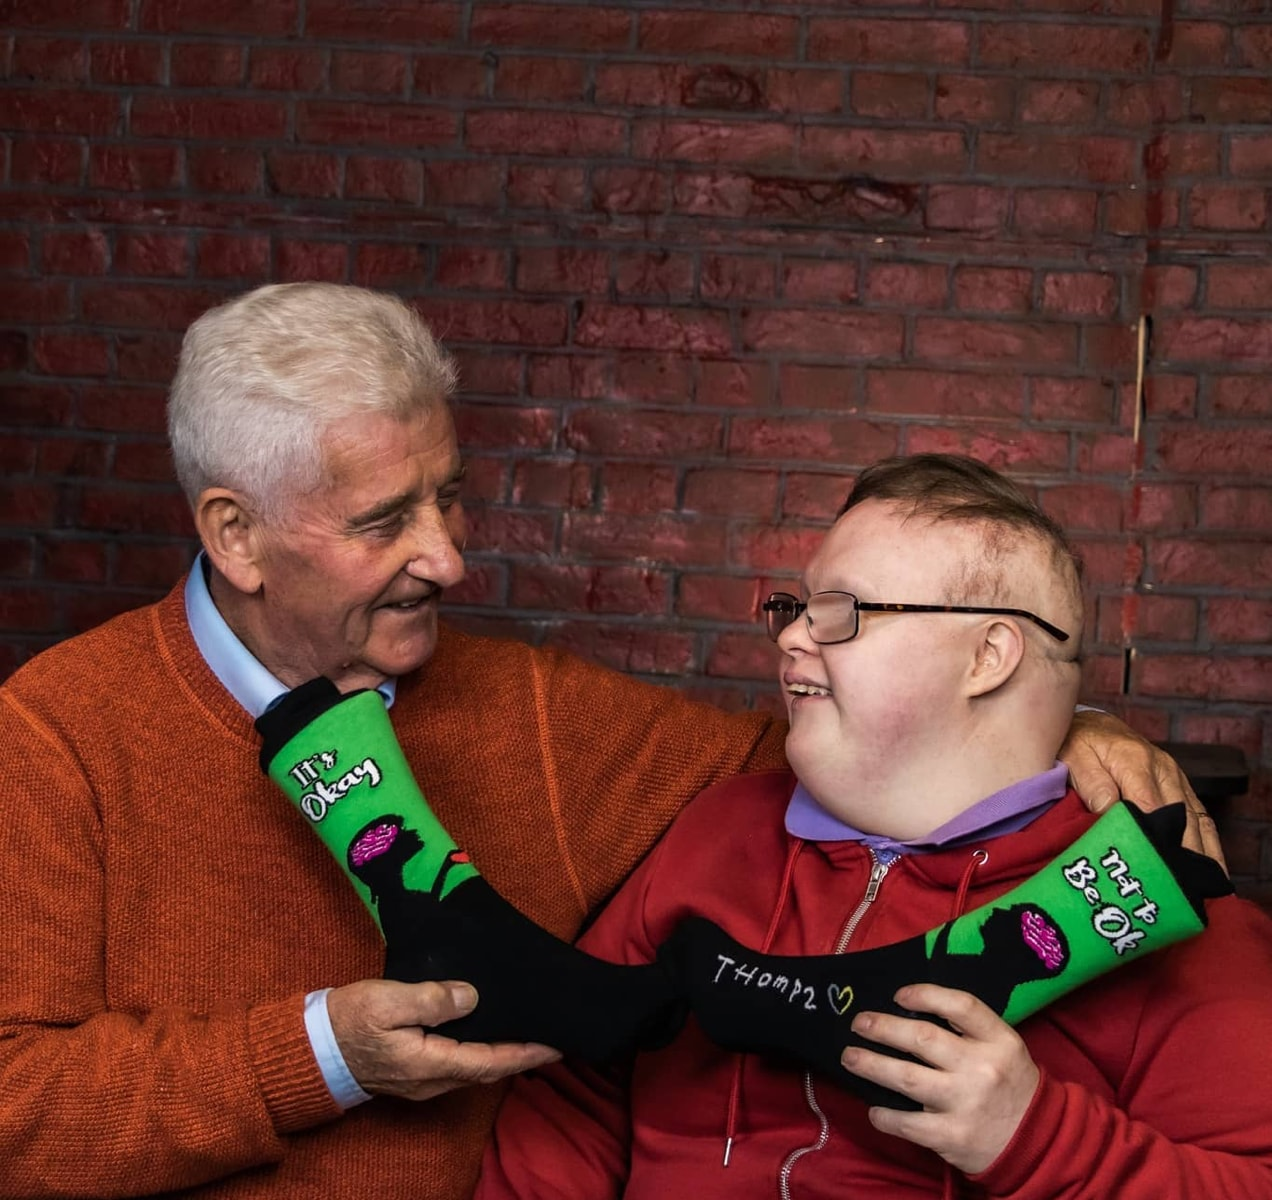 Thomas and his father with a pair of socks that say,